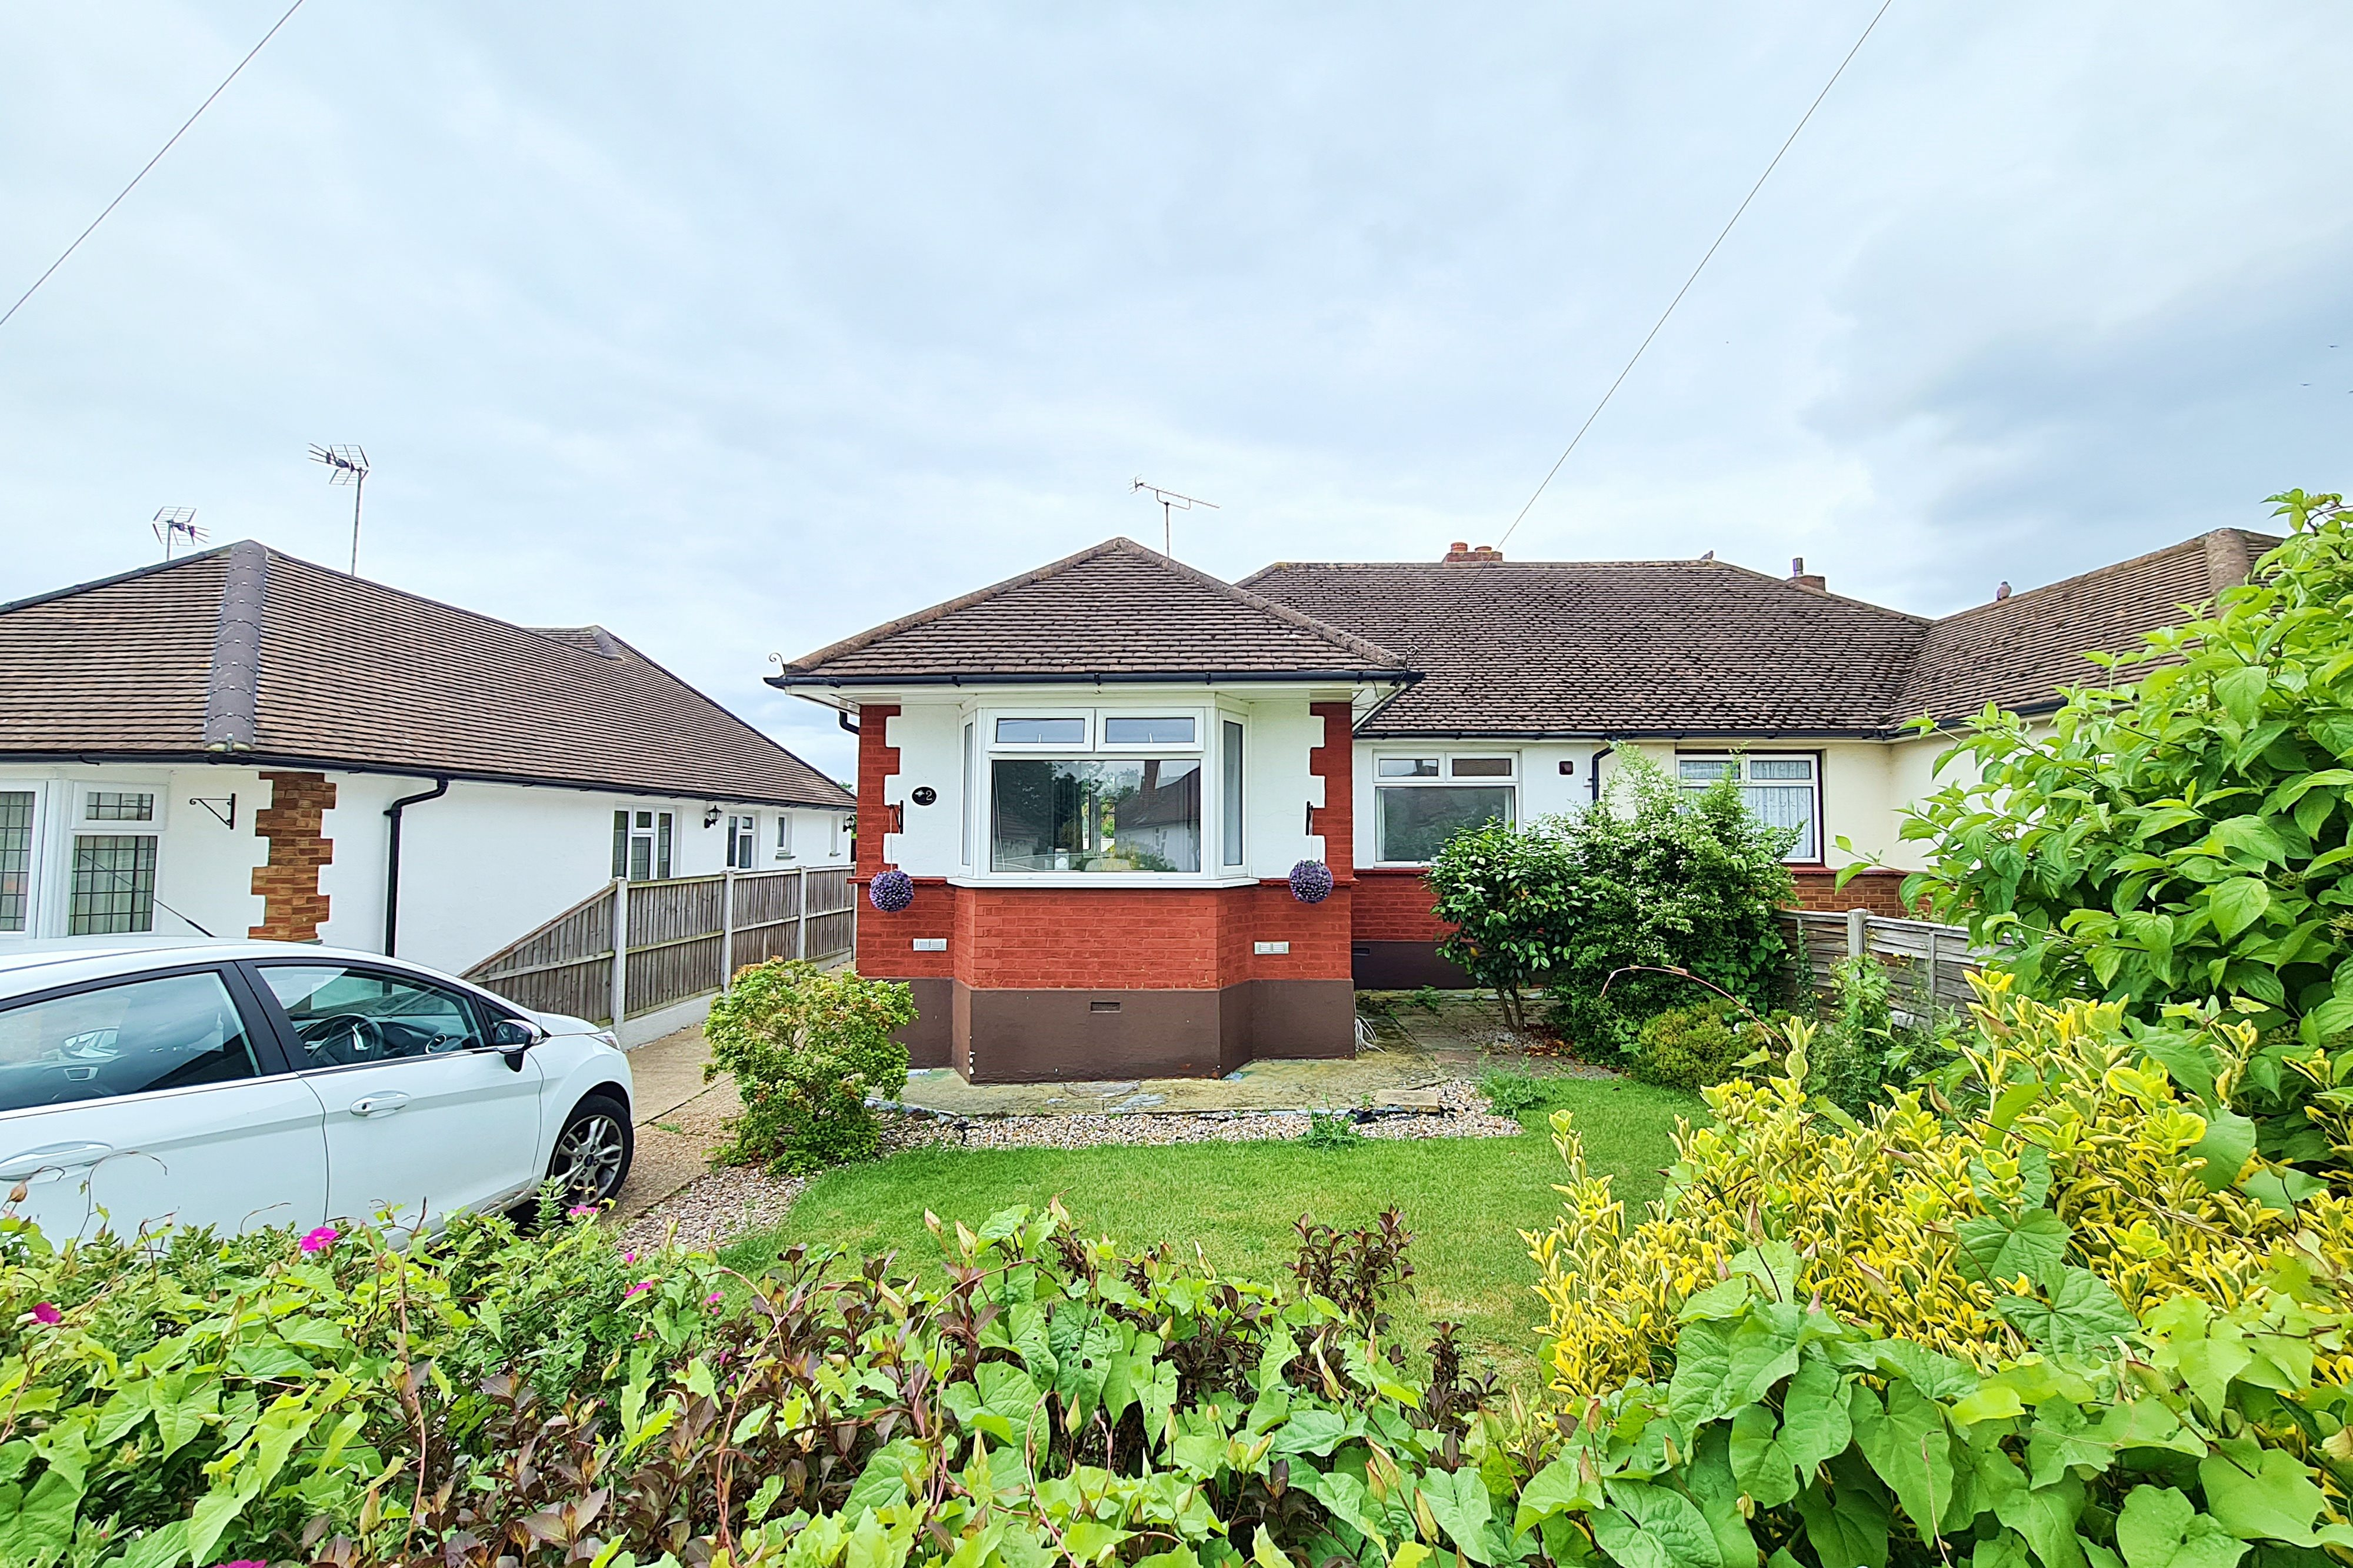 2 bed semi-detached bungalow for sale in Nursery Close, Rayleigh - Property Image 1